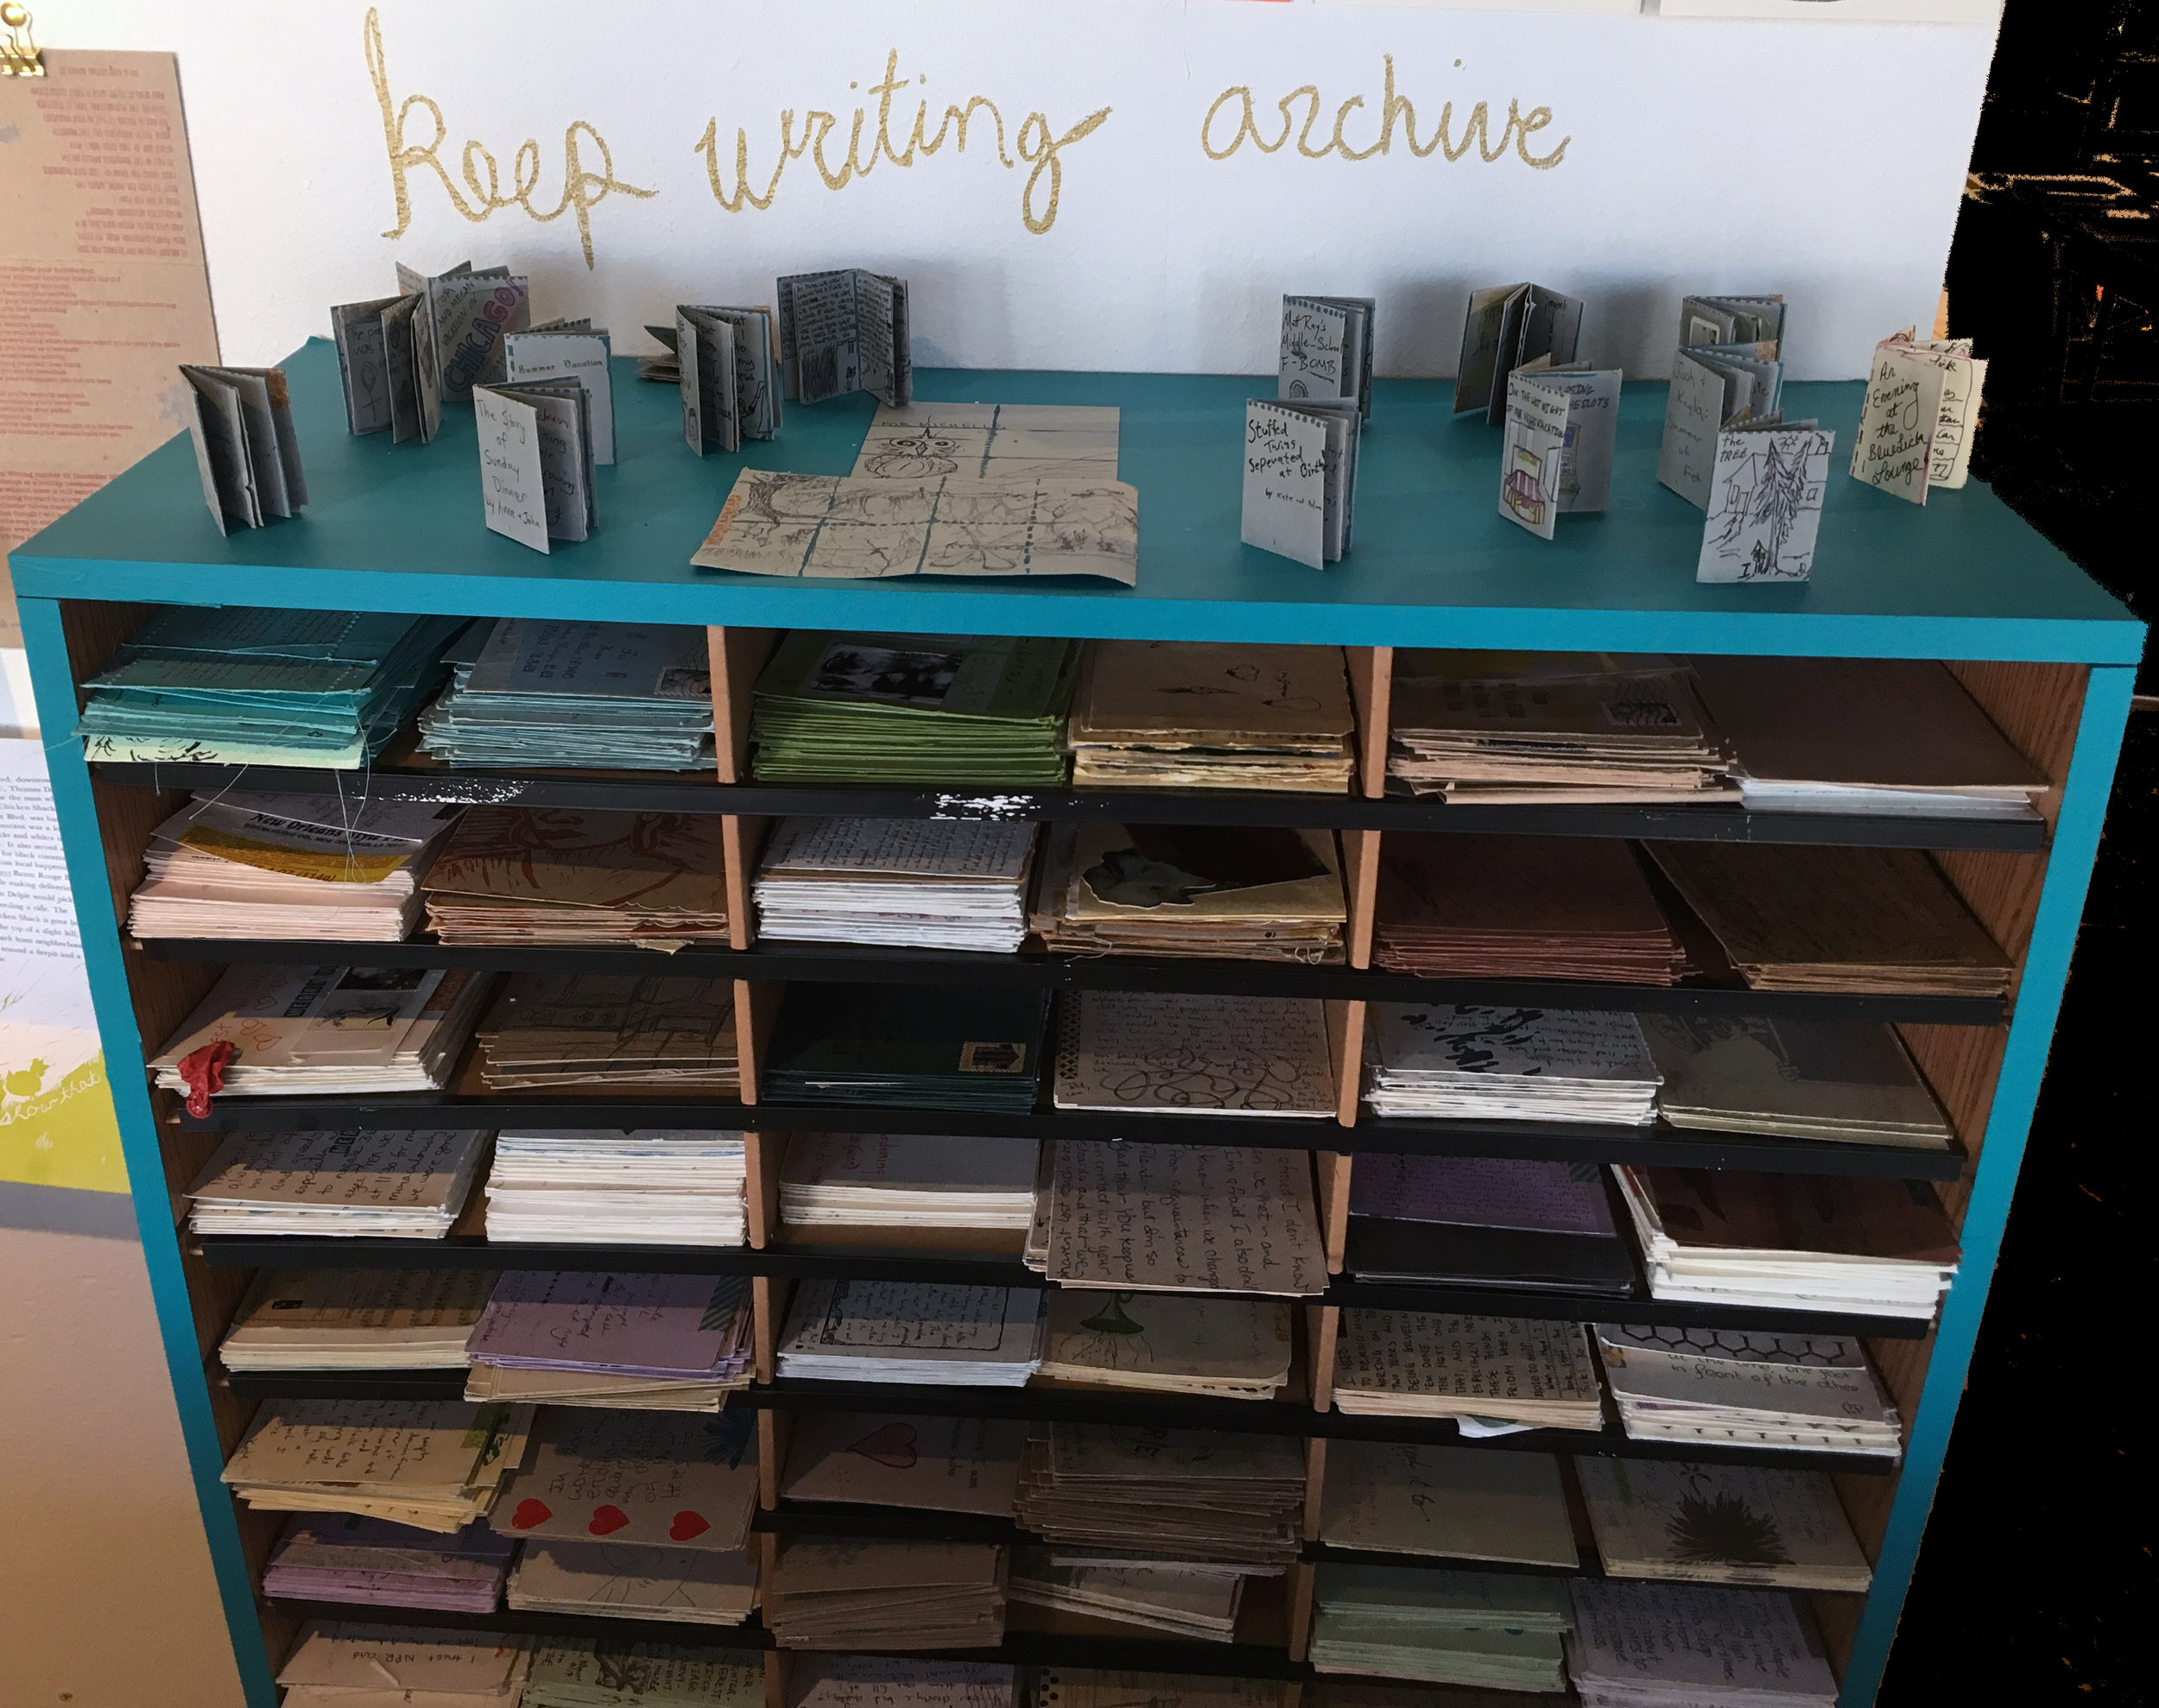 keep writing archive